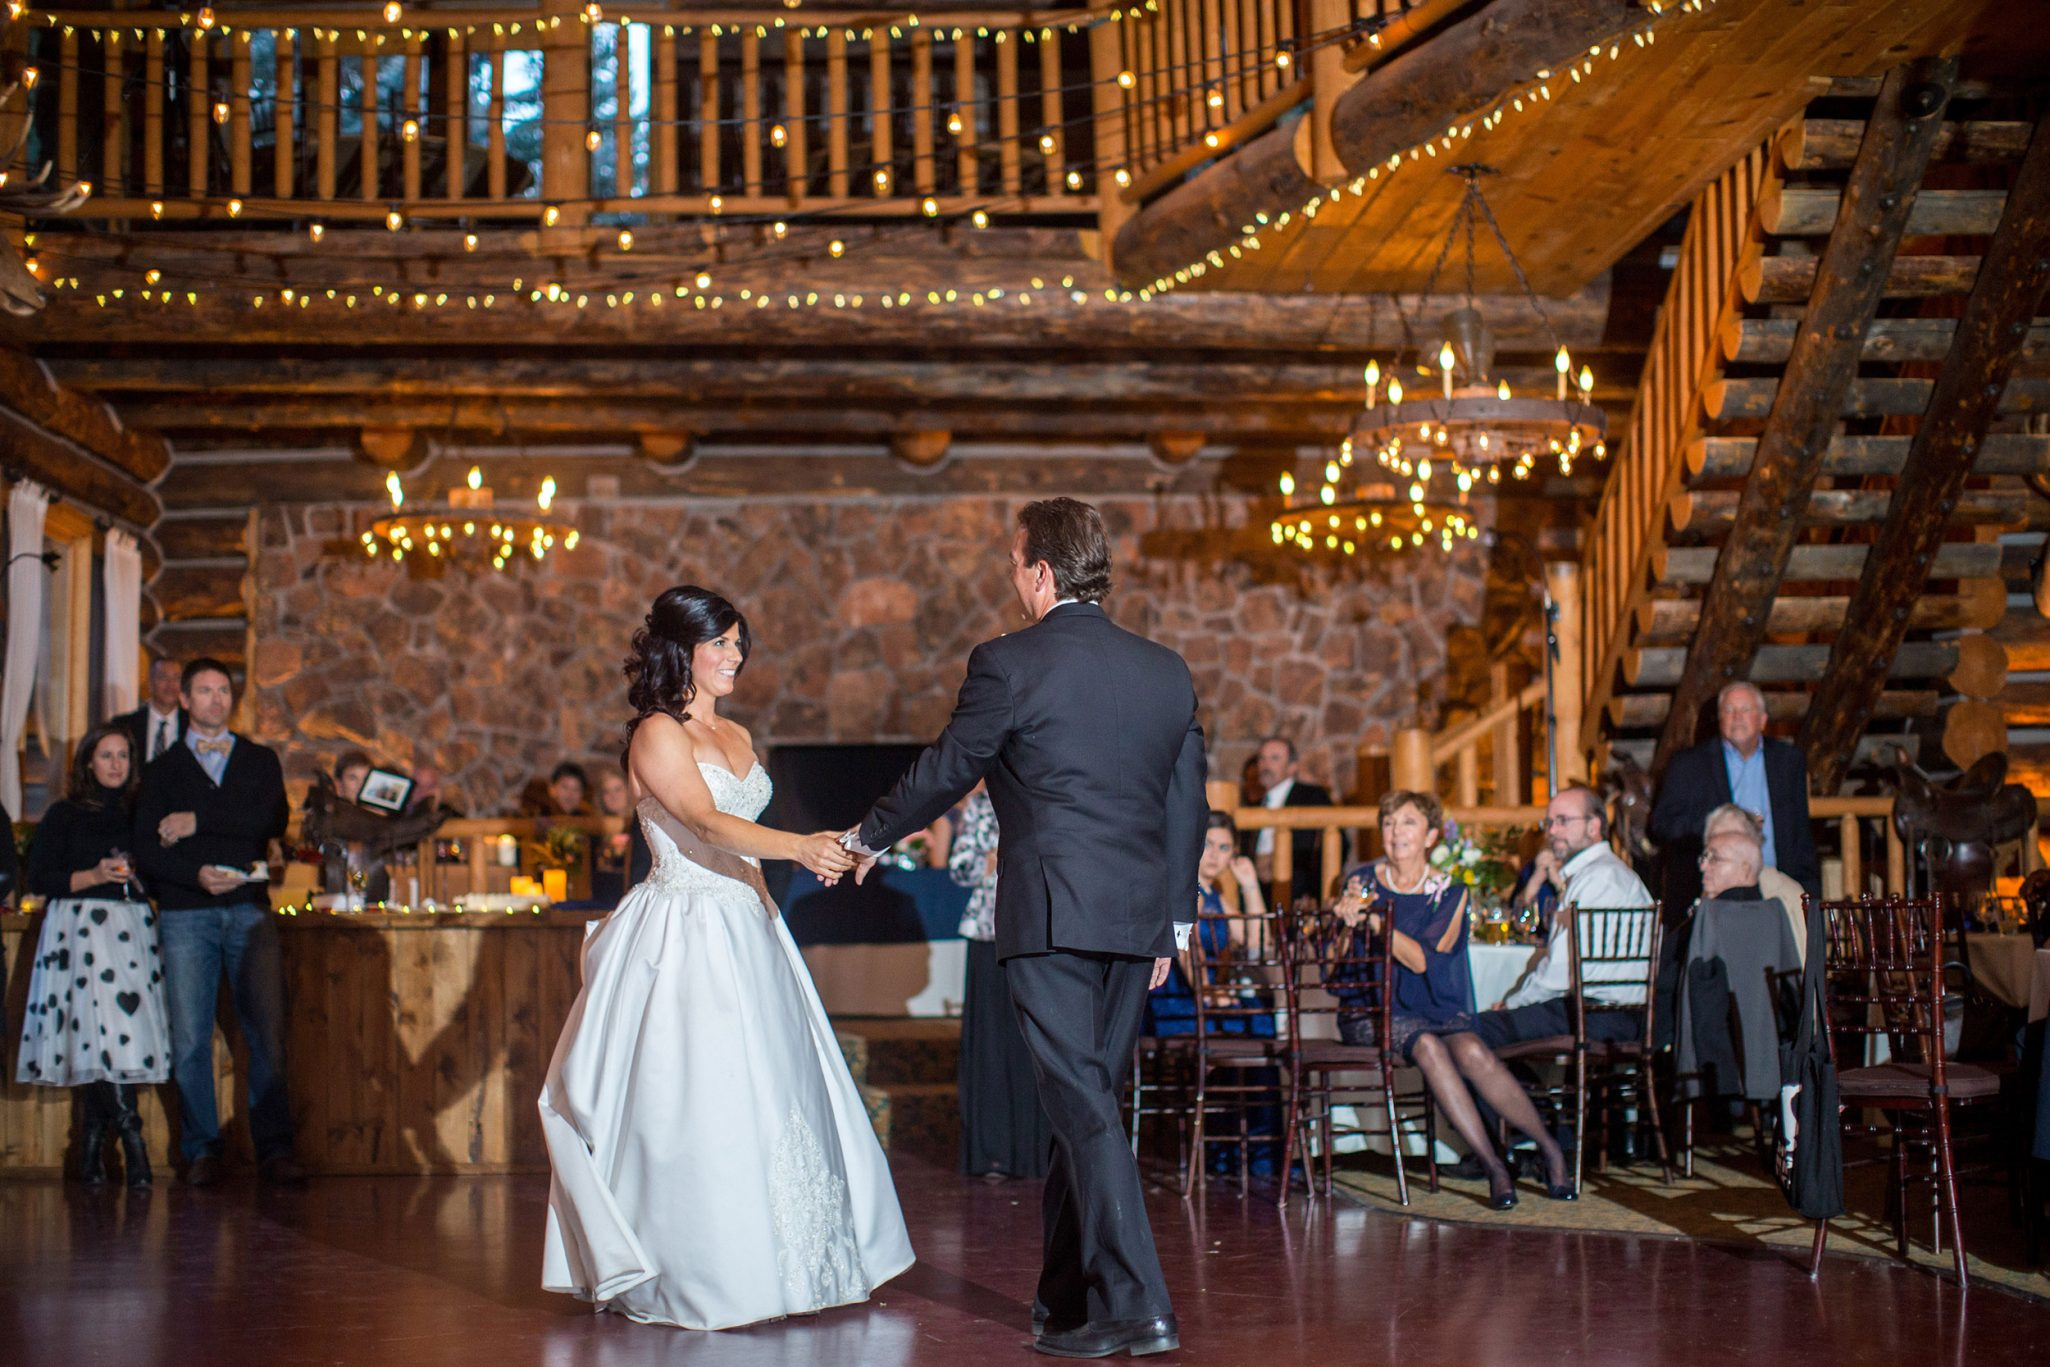 Bride + Groom dance | A Fall Aspen Wedding at T Lazy 7 Ranch, Colorado